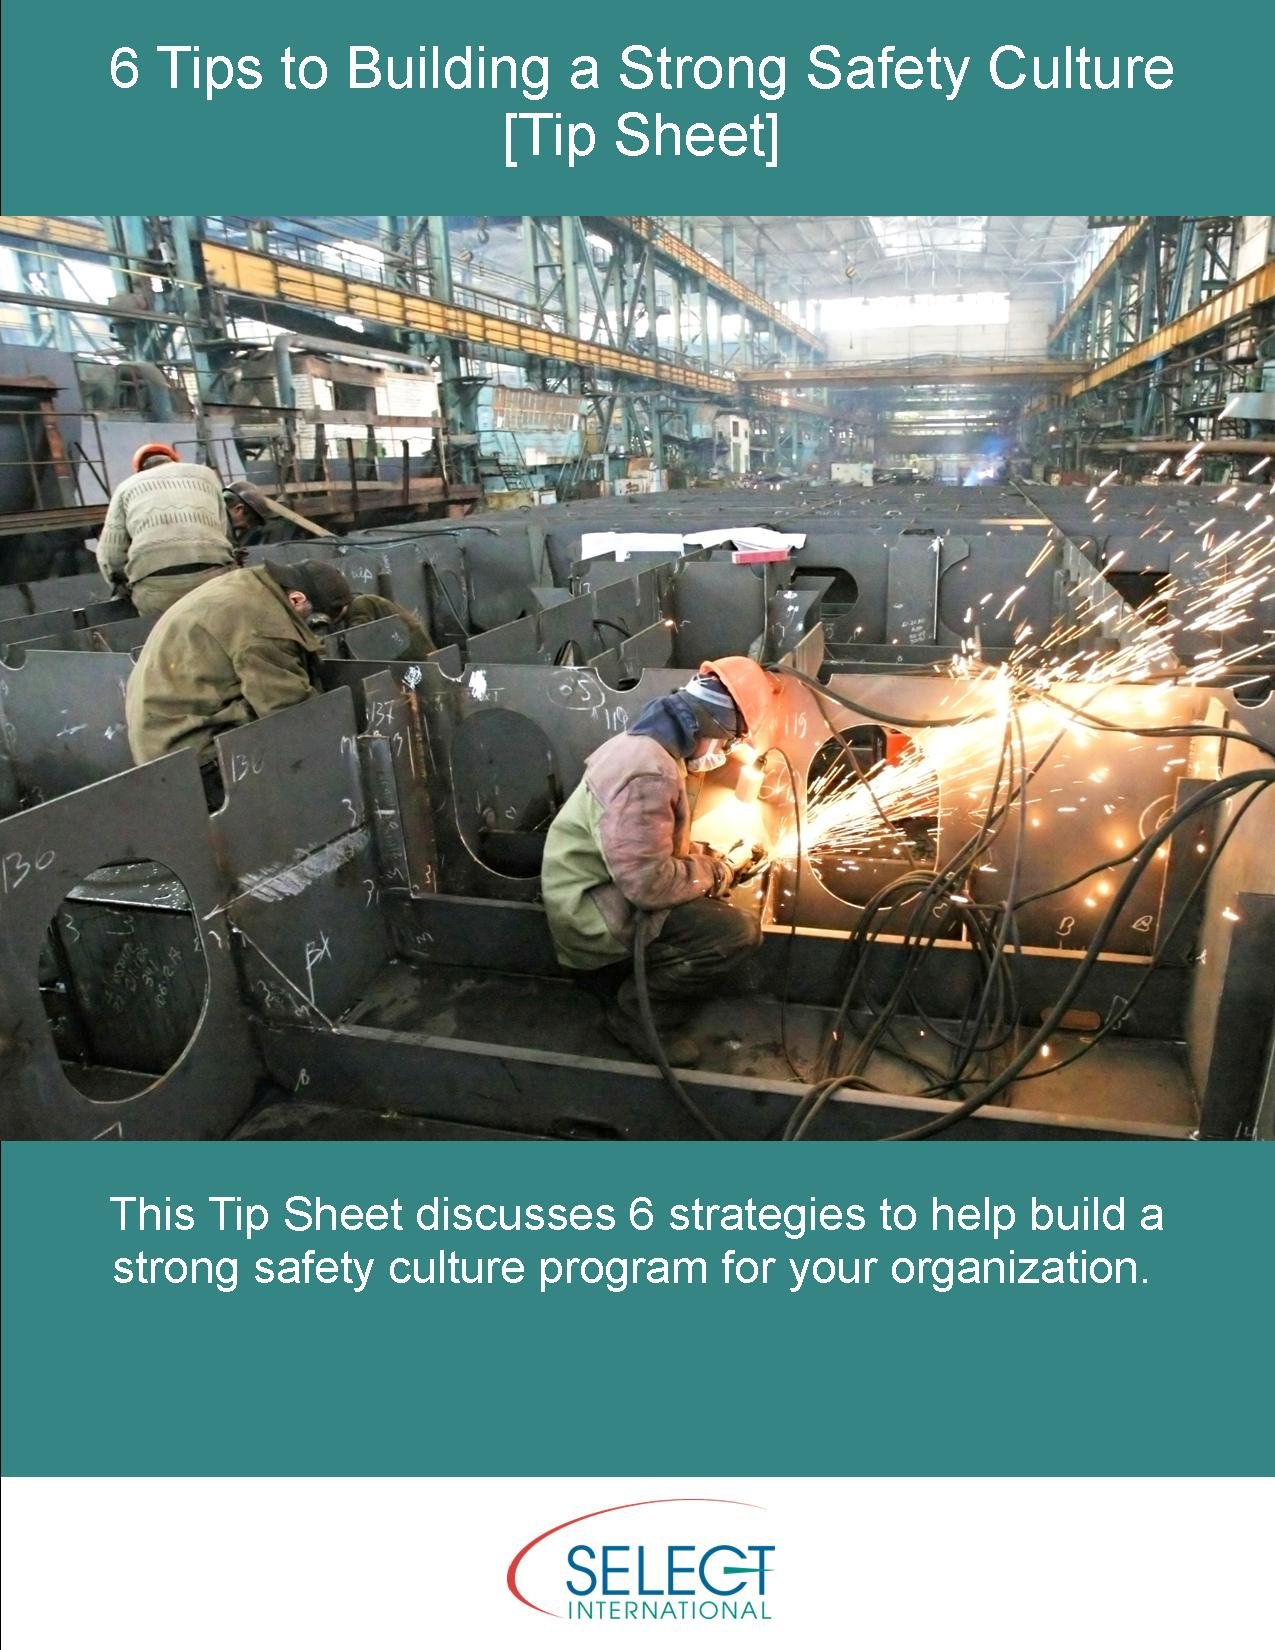 6 Tips for Building a Strong Safety Culture [tip sheet]